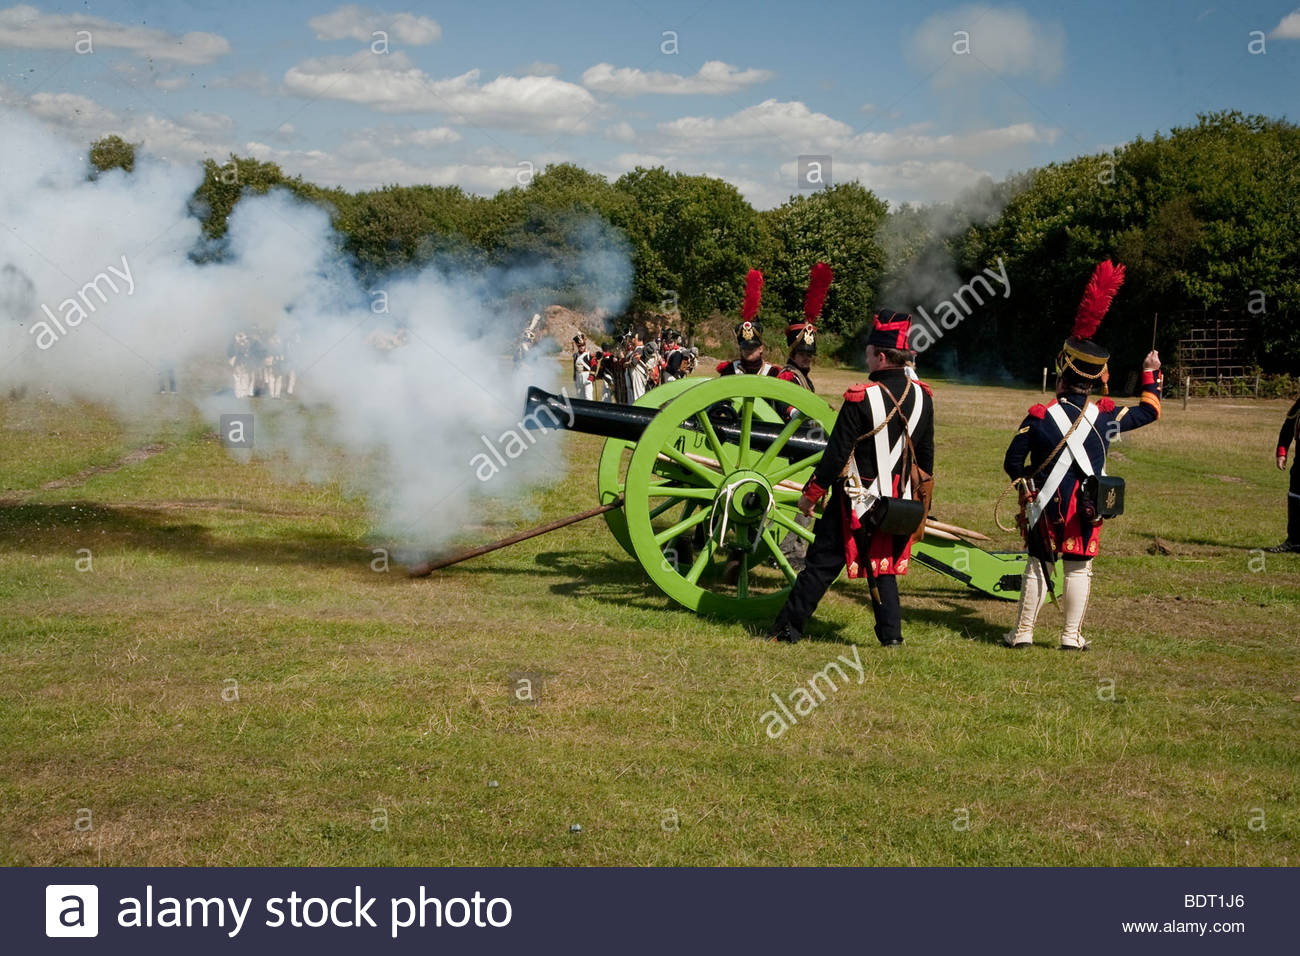 french canon fire - Stock Image